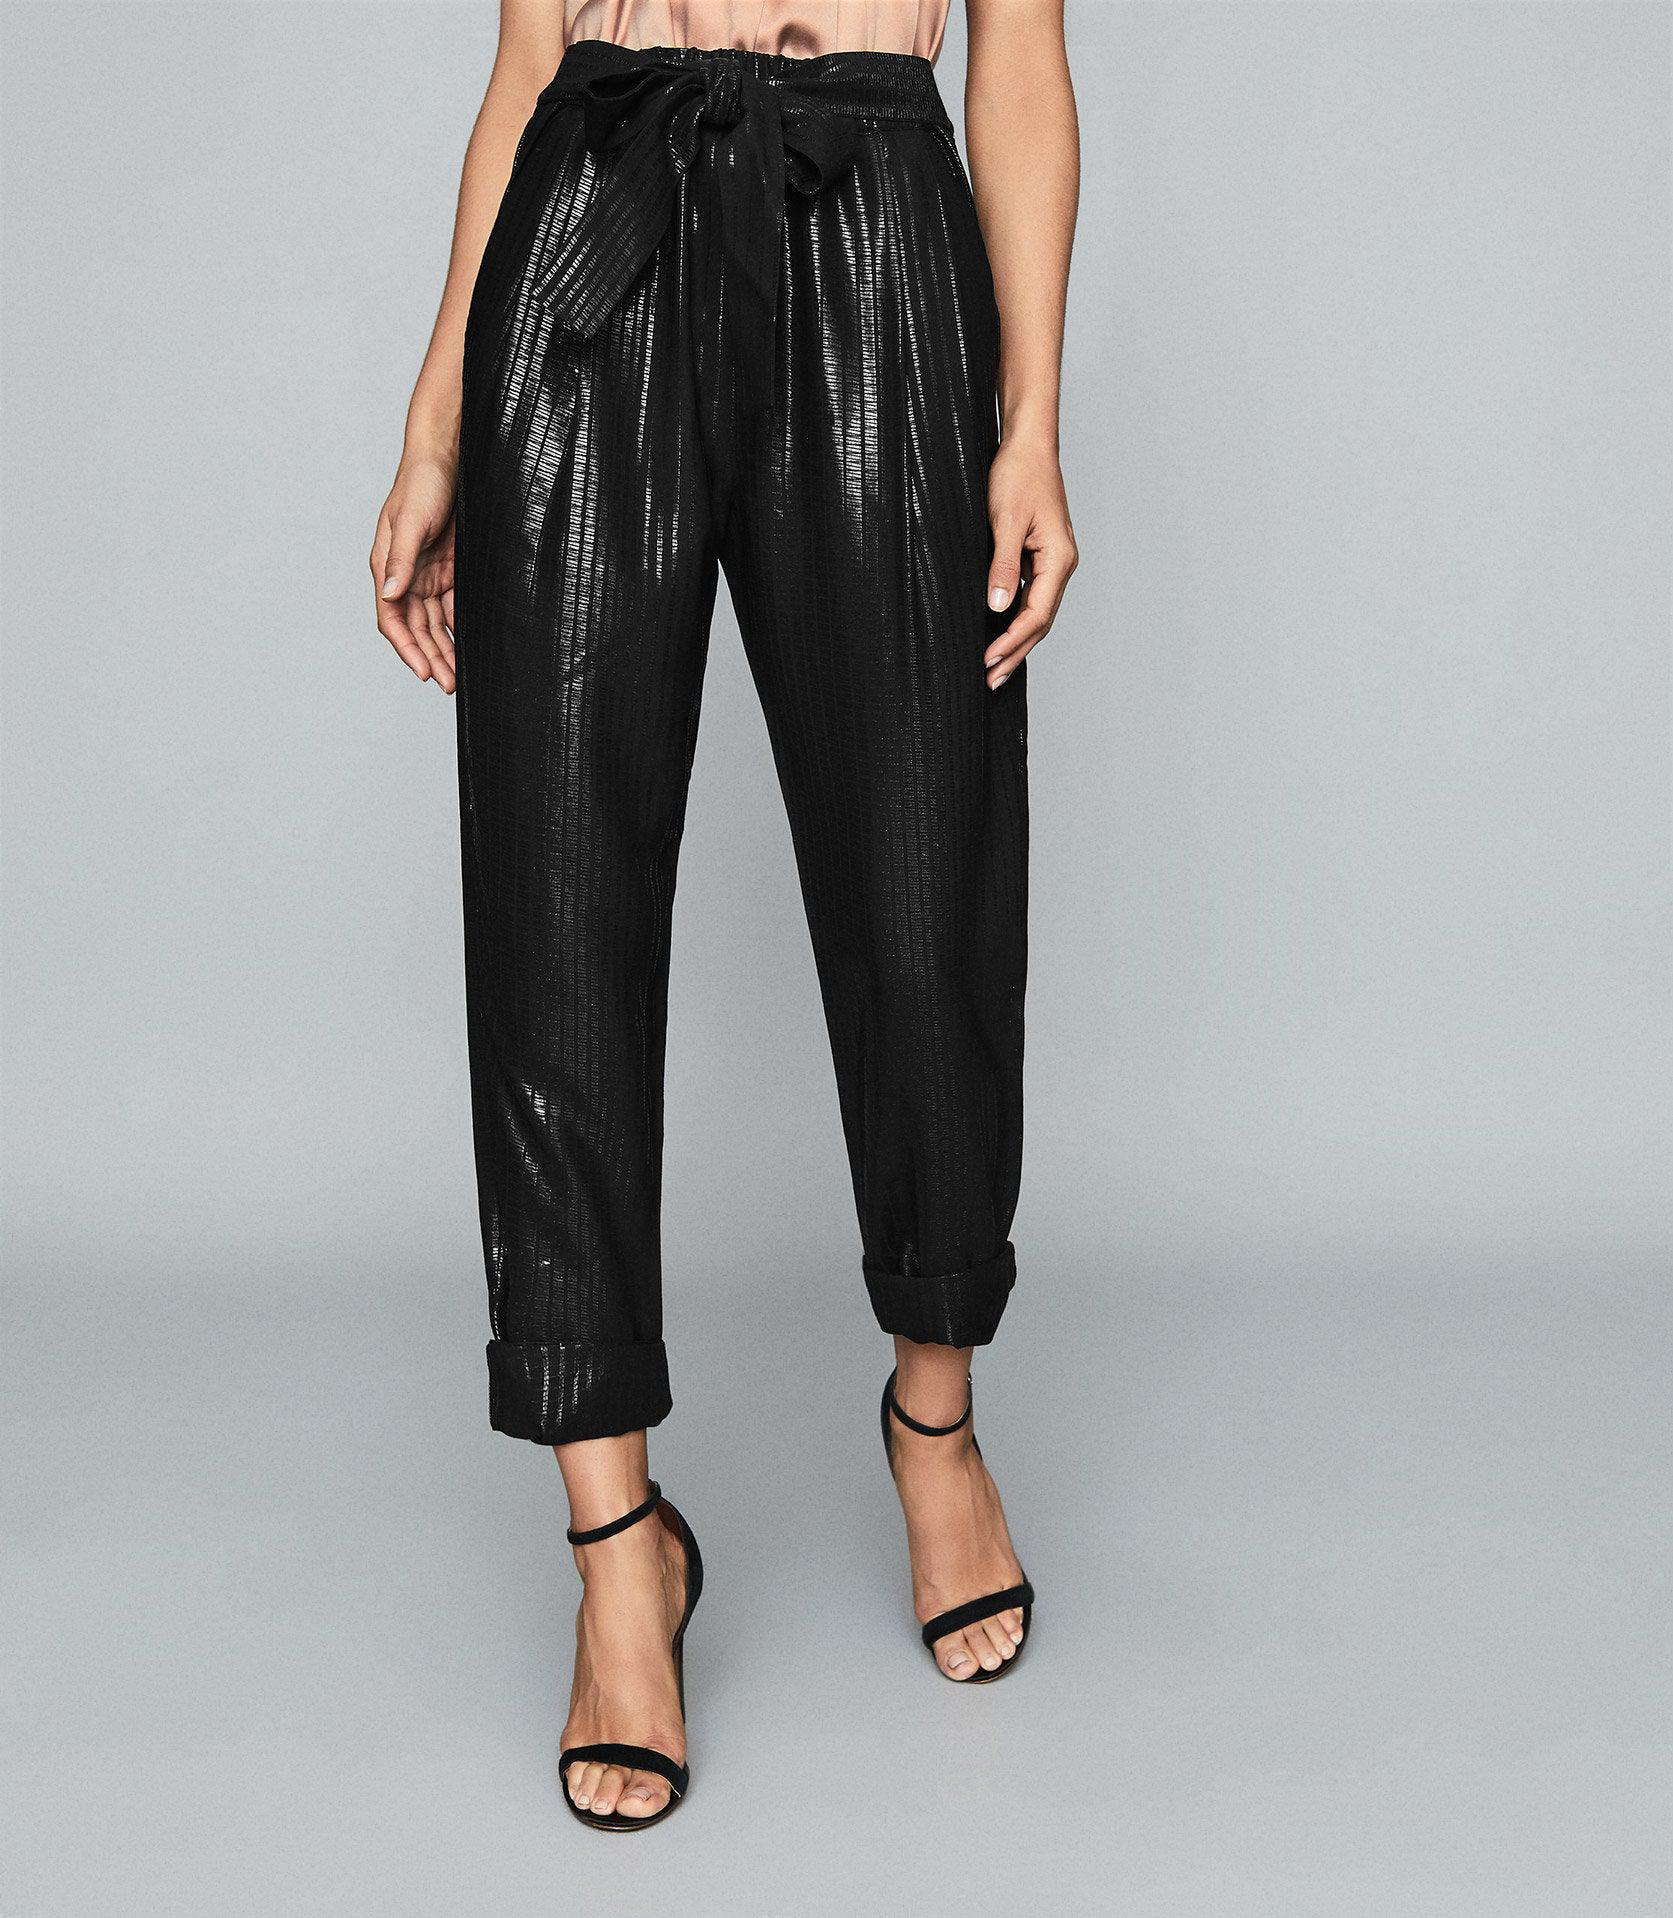 PENNIE - TAPERED SHIMMER TROUSERS 1